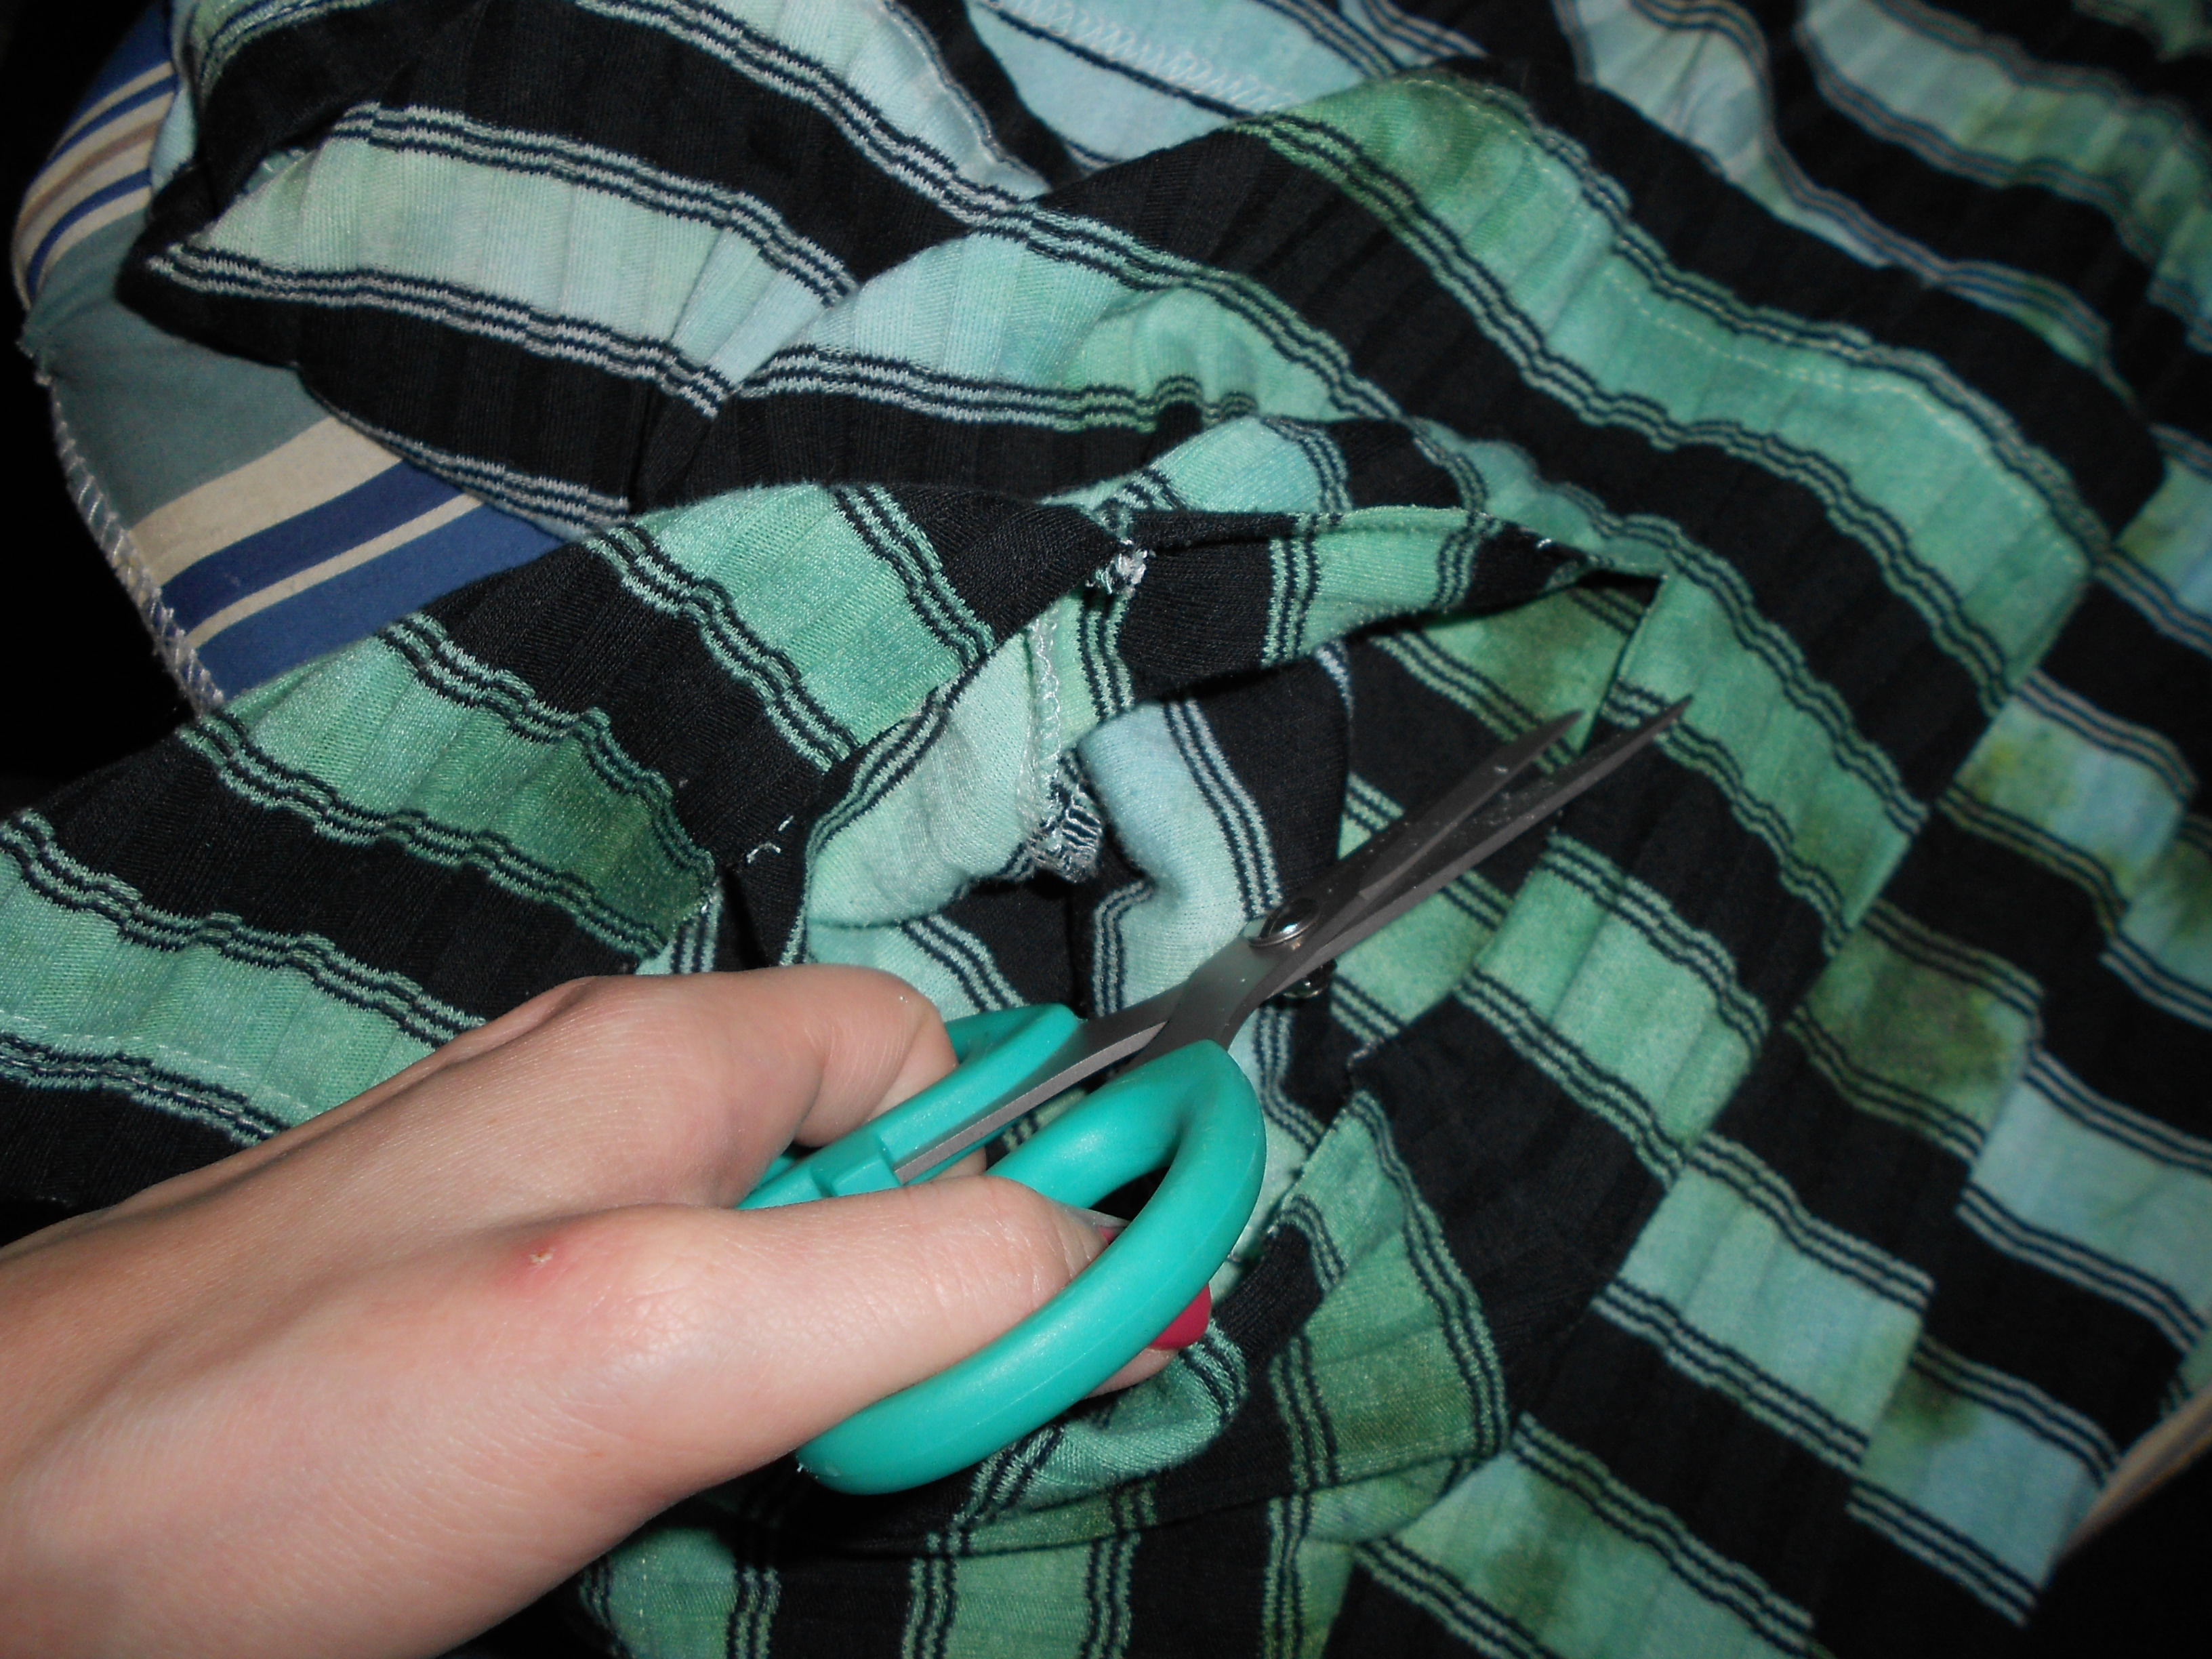 Day 207: A Jumper-to-Dress Dyed Refashion 9